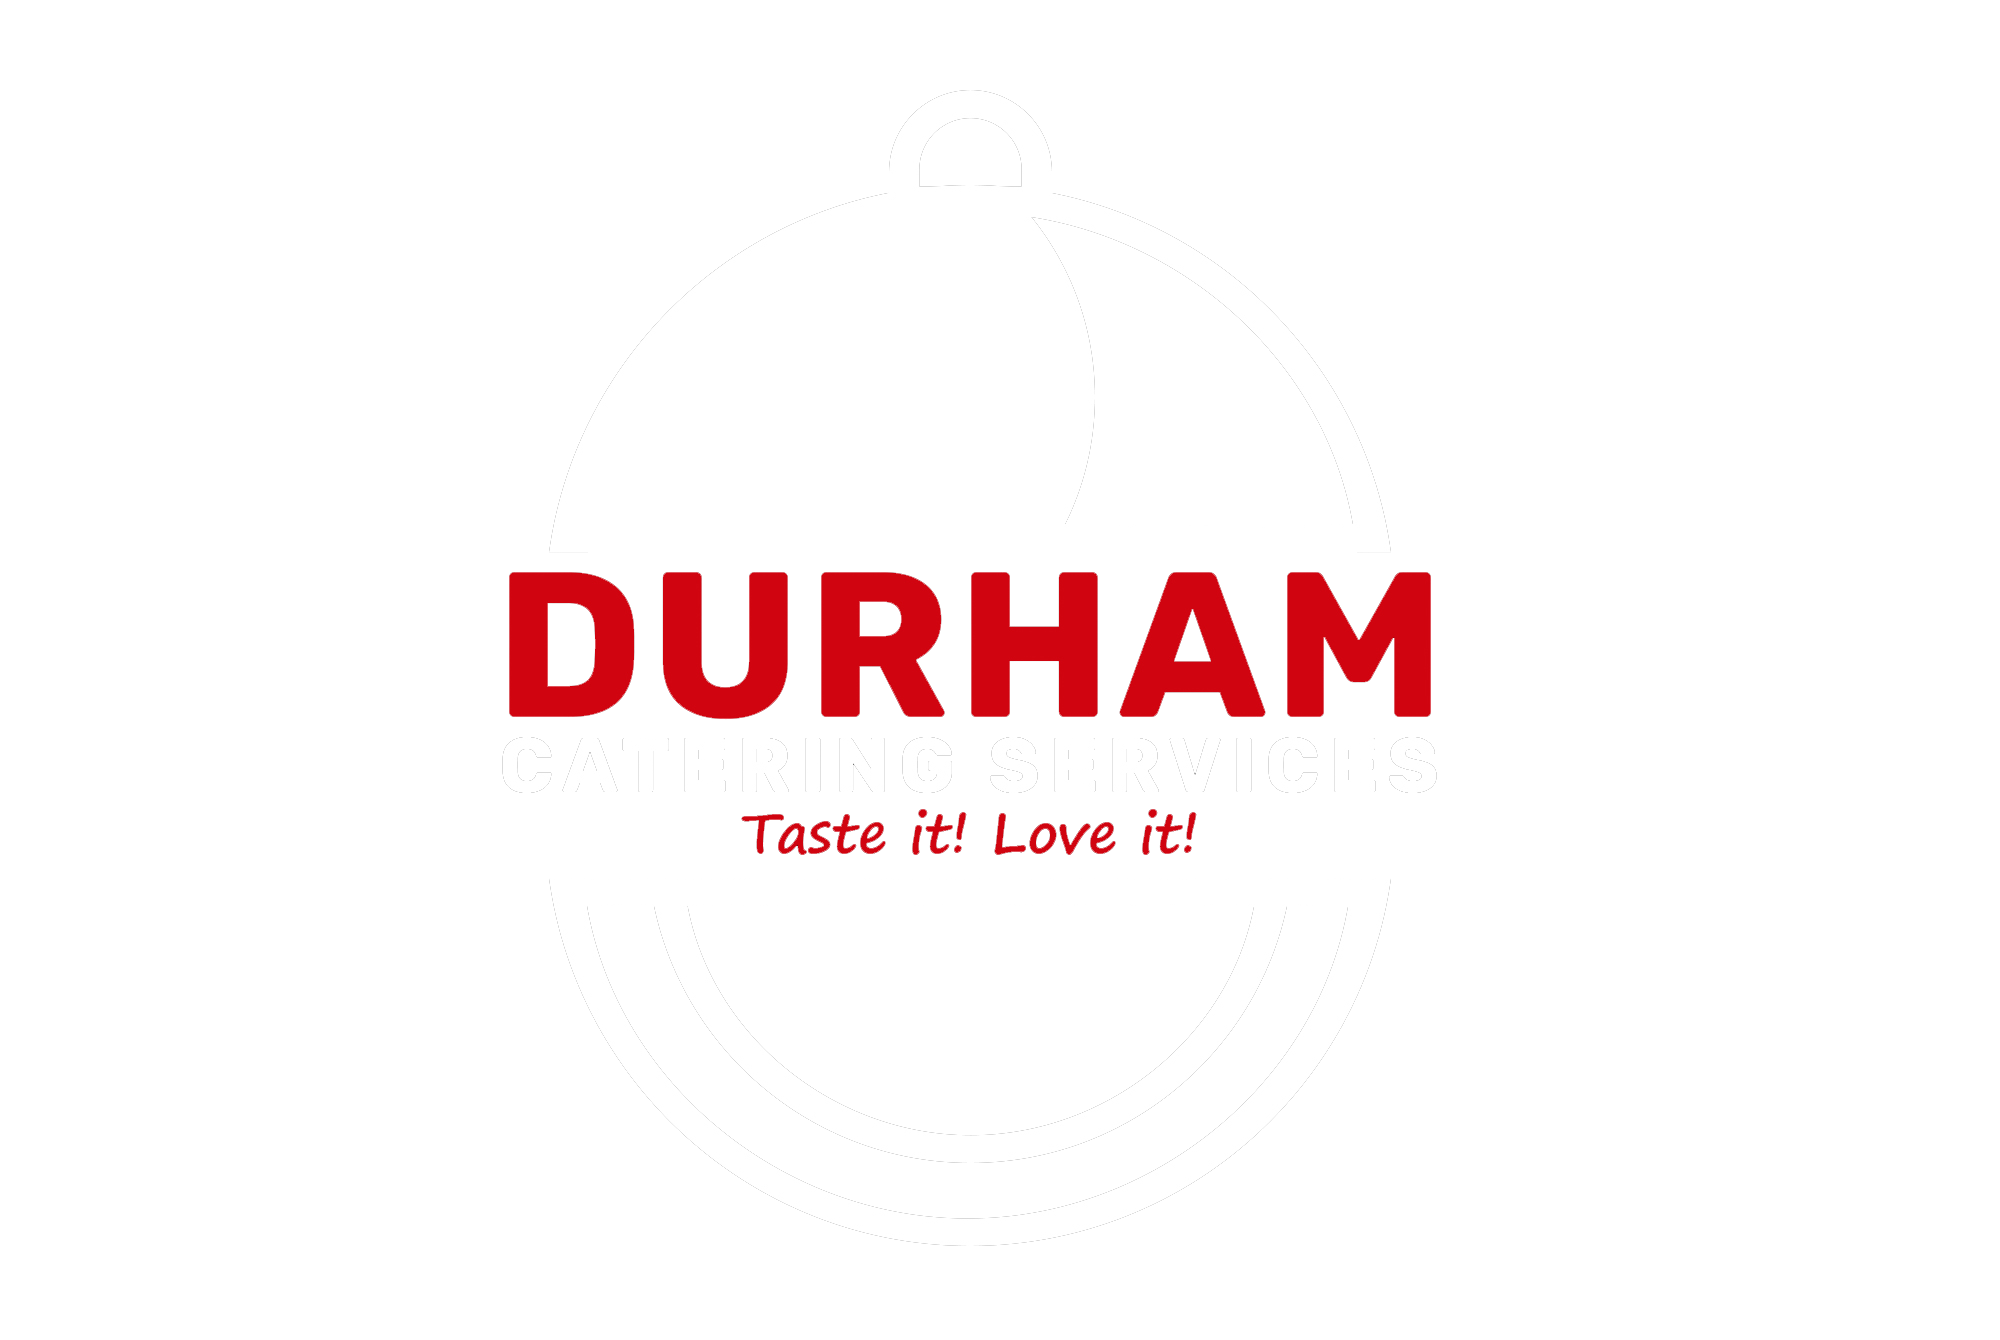 Durham Catering Services